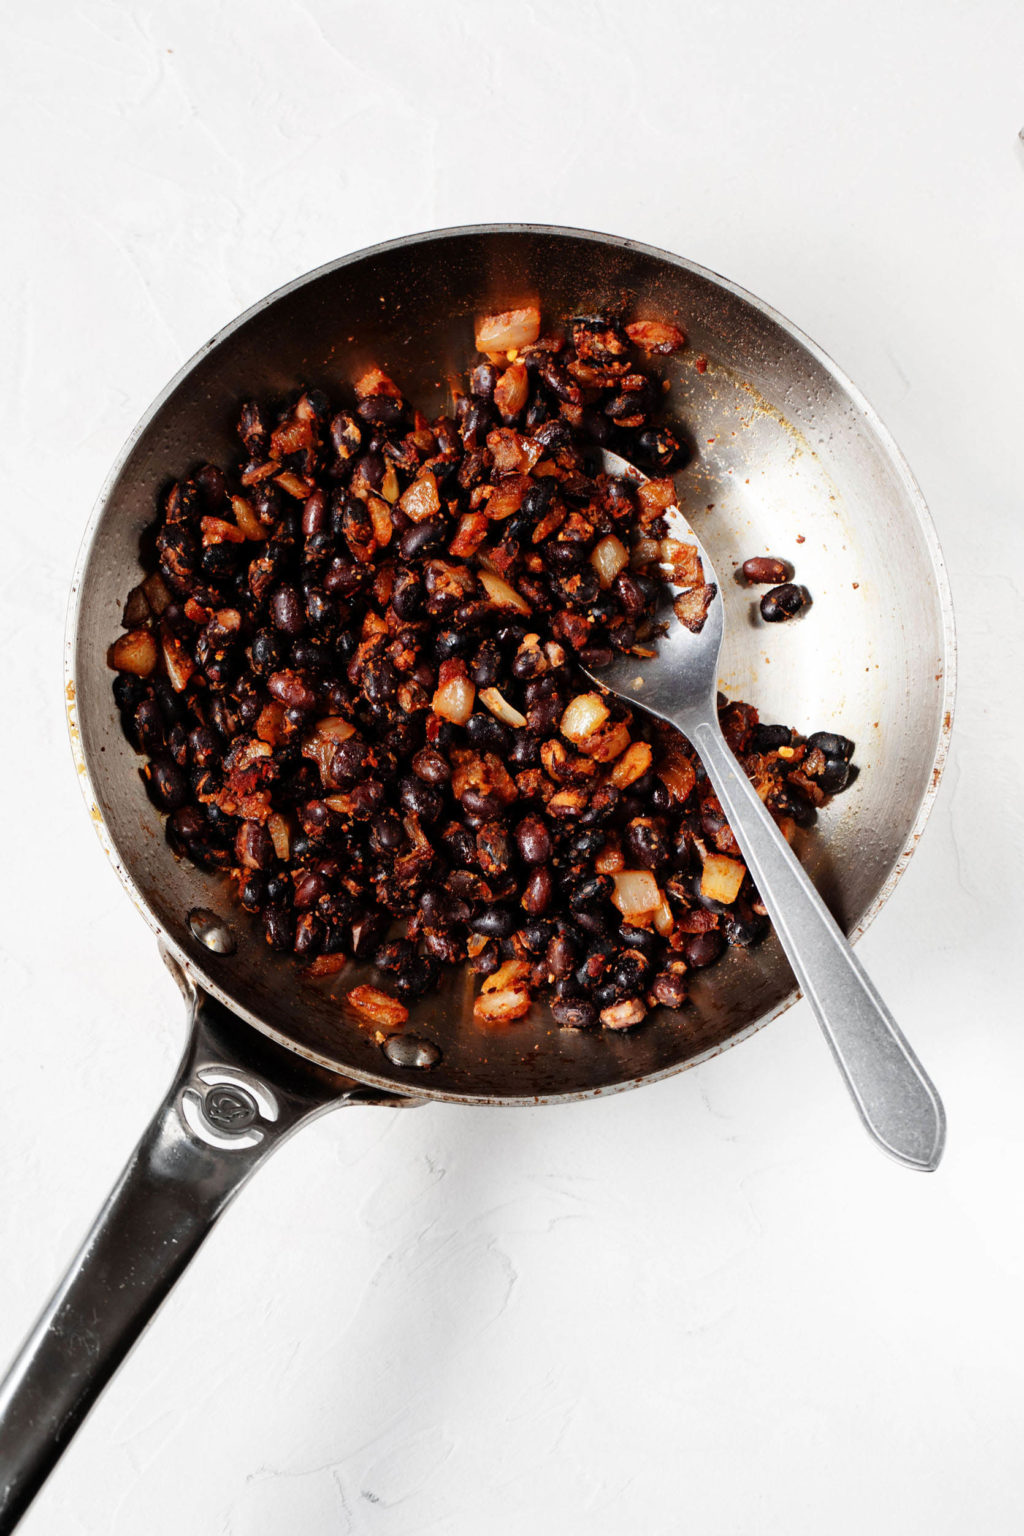 Black beans and onions are being sauteed in a round, stainless steel frying pan.